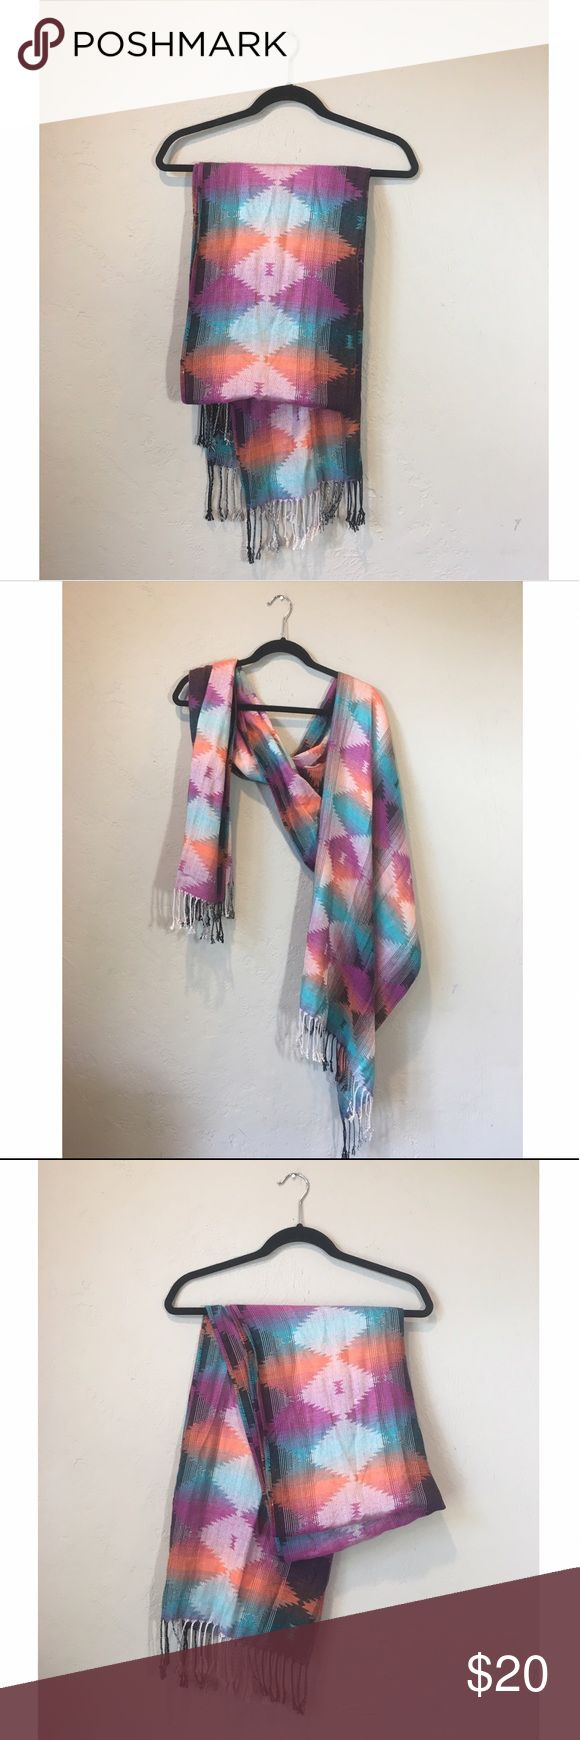 Beautiful large scarf. Very good condition. Soft and smooth. Large size & can be worn many different ways. Beautiful pattern. Accessories Scarves & Wraps